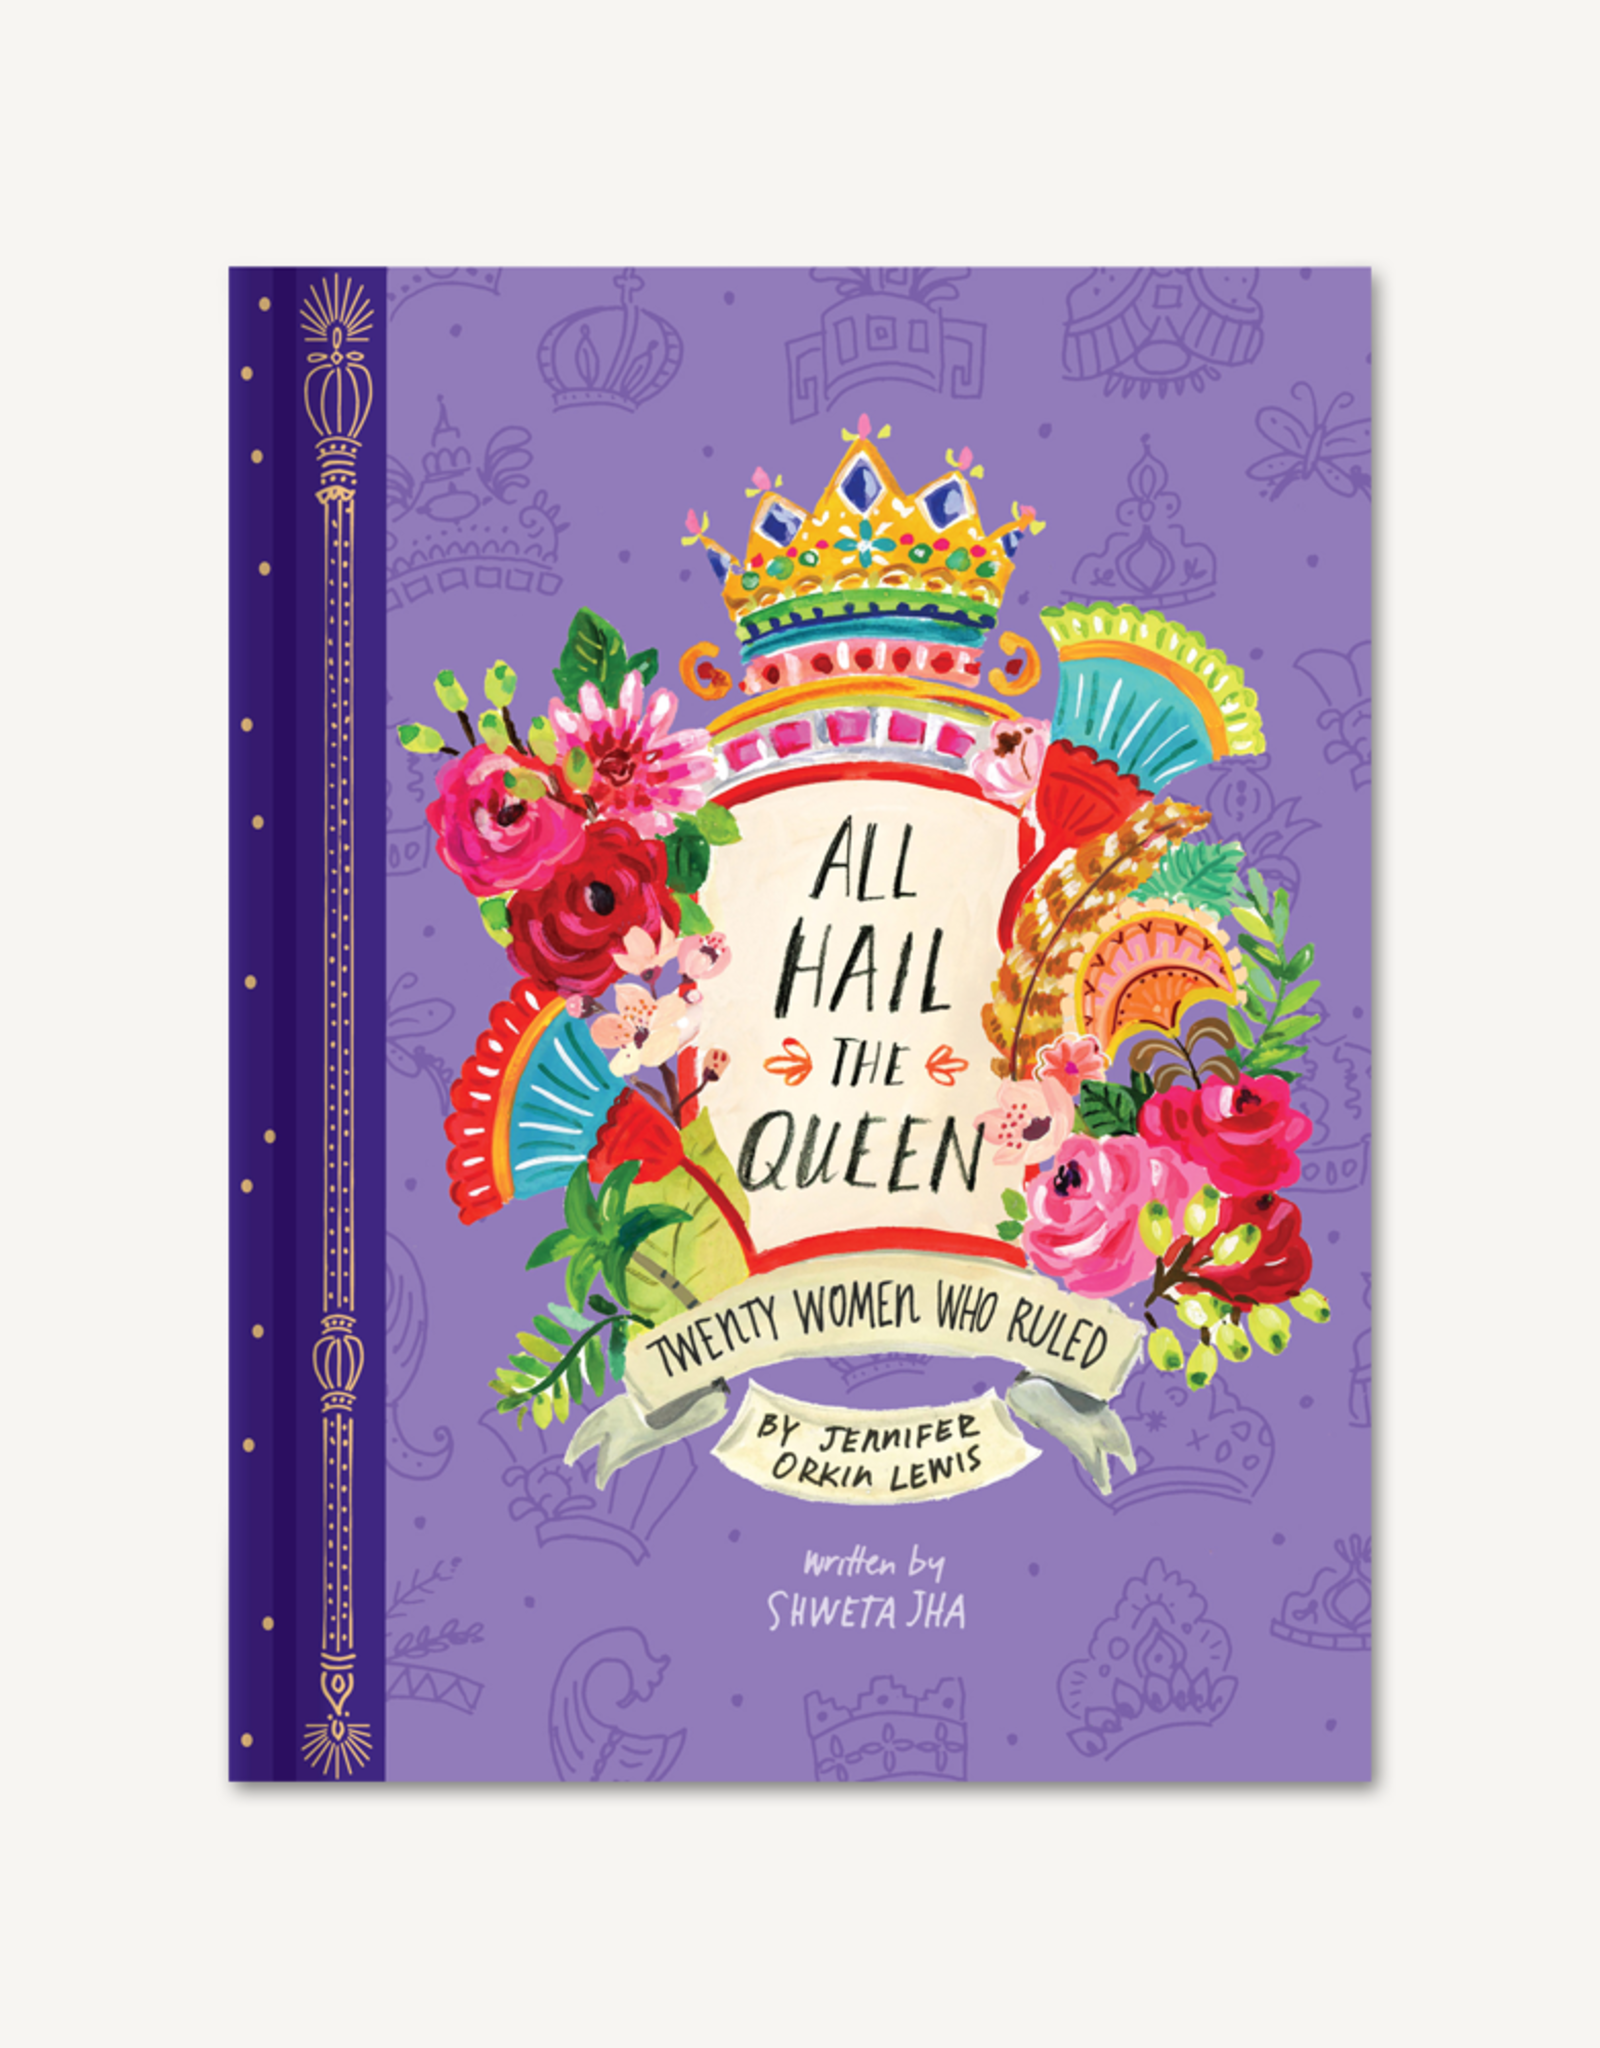 All Hail the Queen by Jennifer Orkin Lewis and Shweta Jha